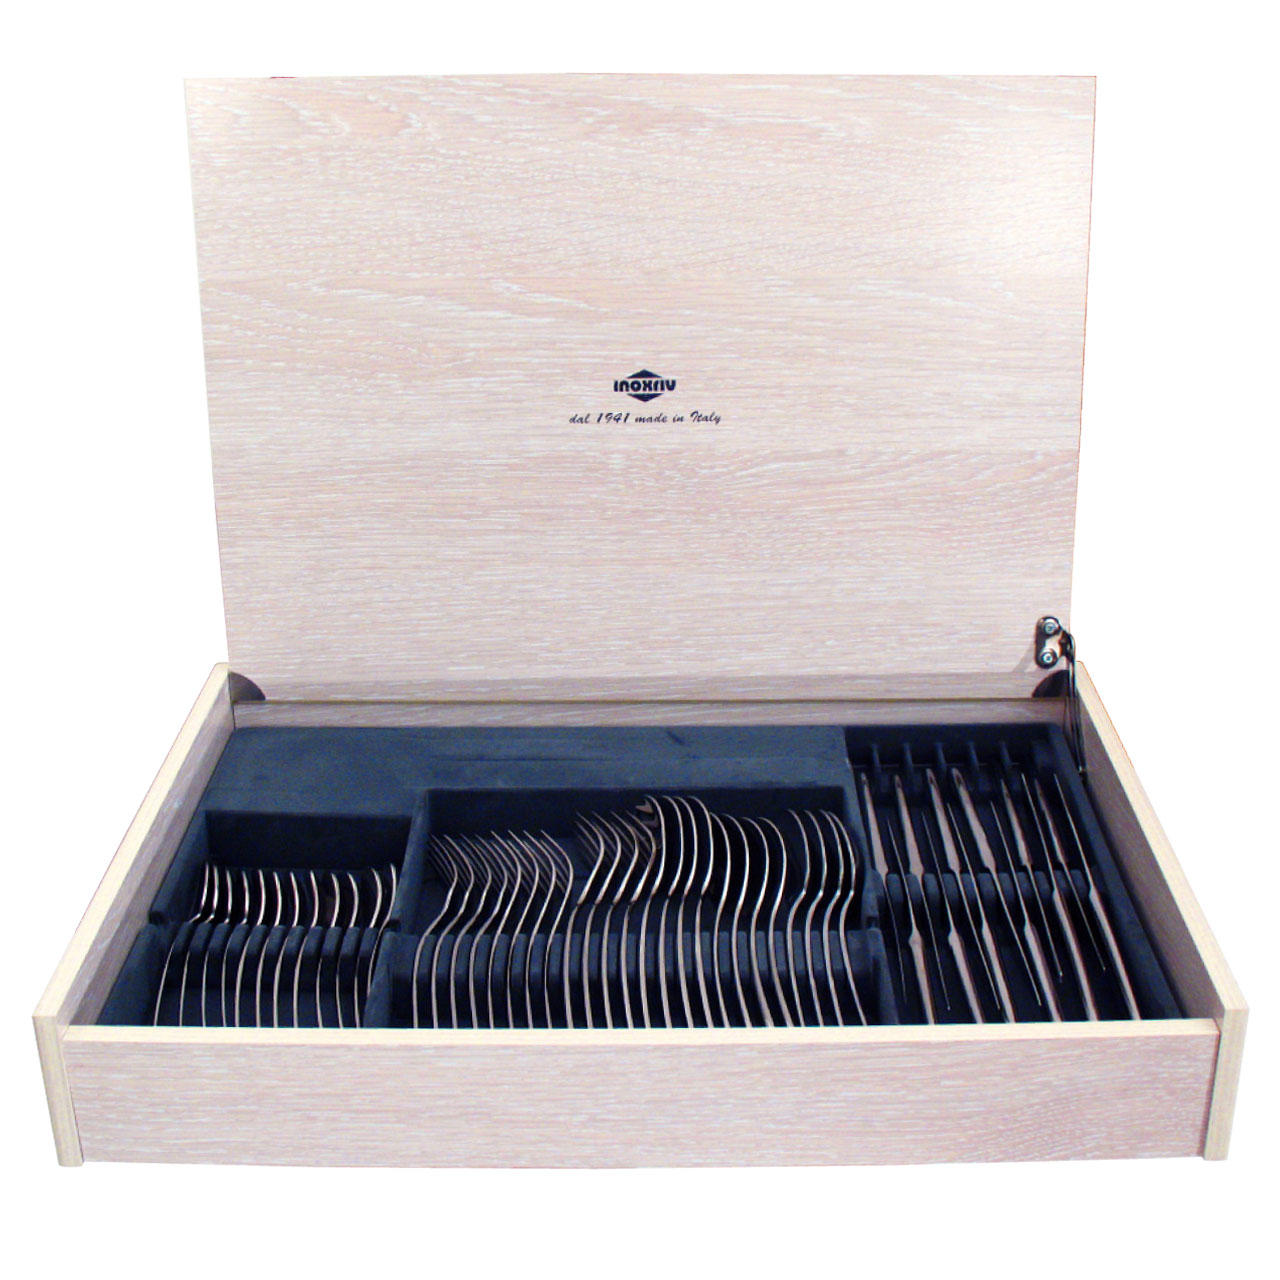 66020048 48 pcs. cutlery set Luxury Case